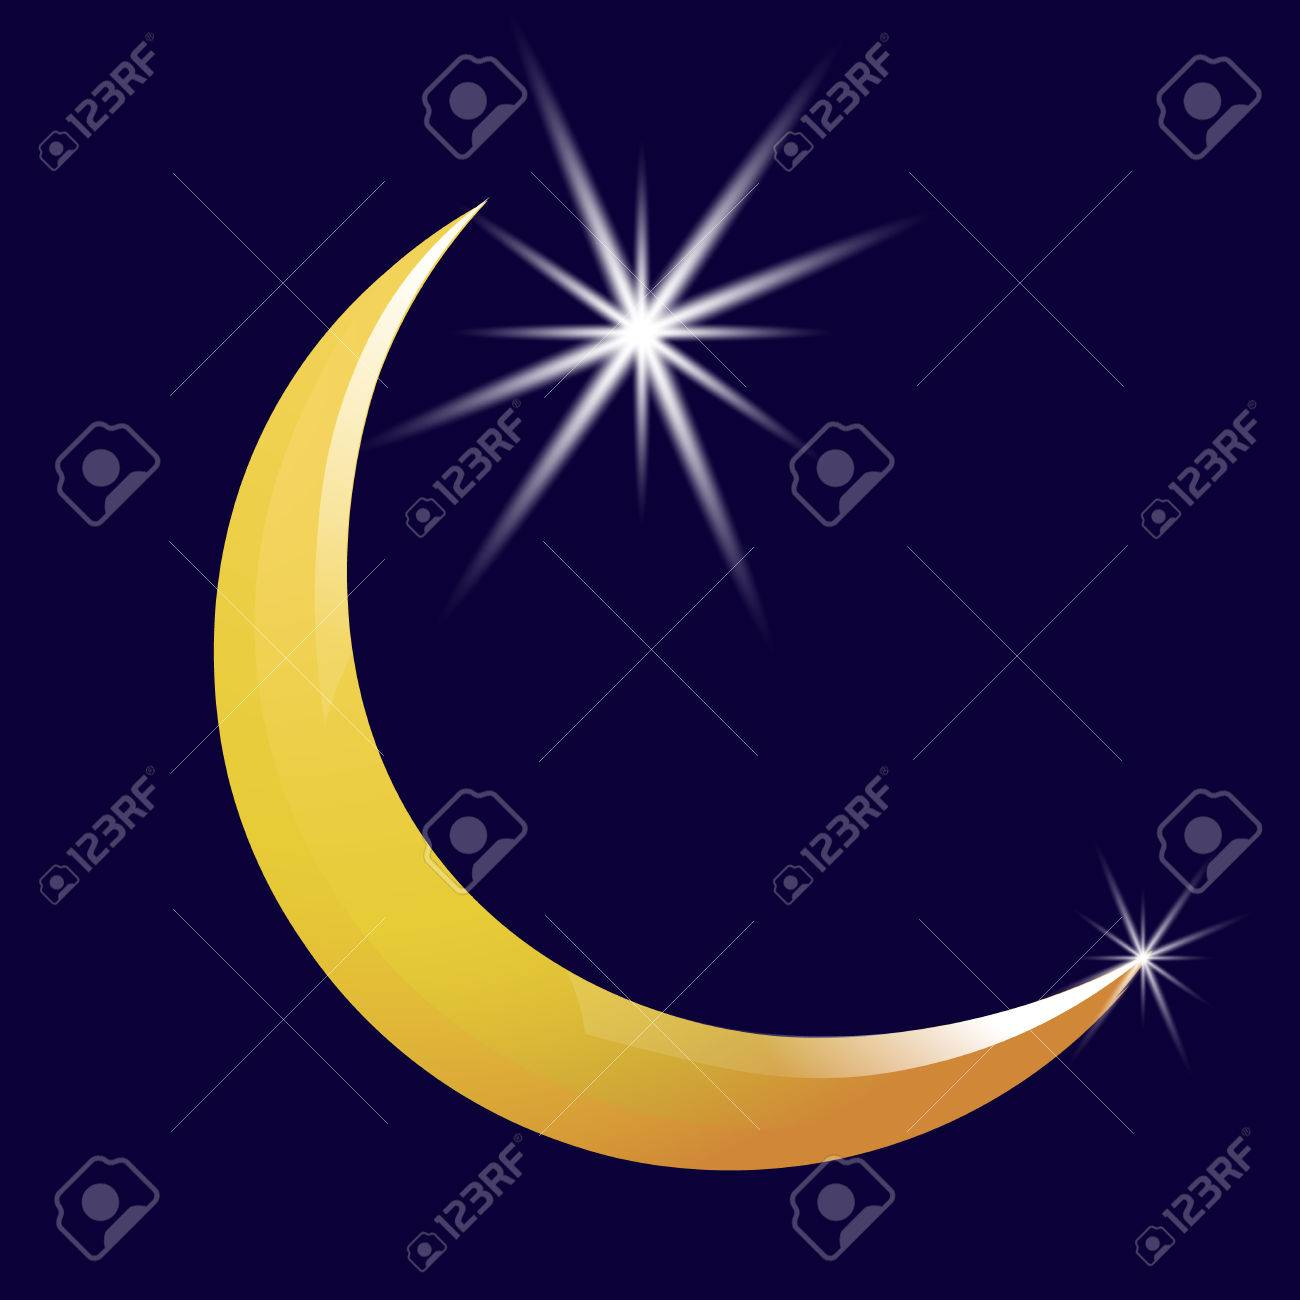 Crescent moon and star vector icon vector illustration royalty free crescent moon and star vector icon vector illustration stock vector 63463188 biocorpaavc Gallery